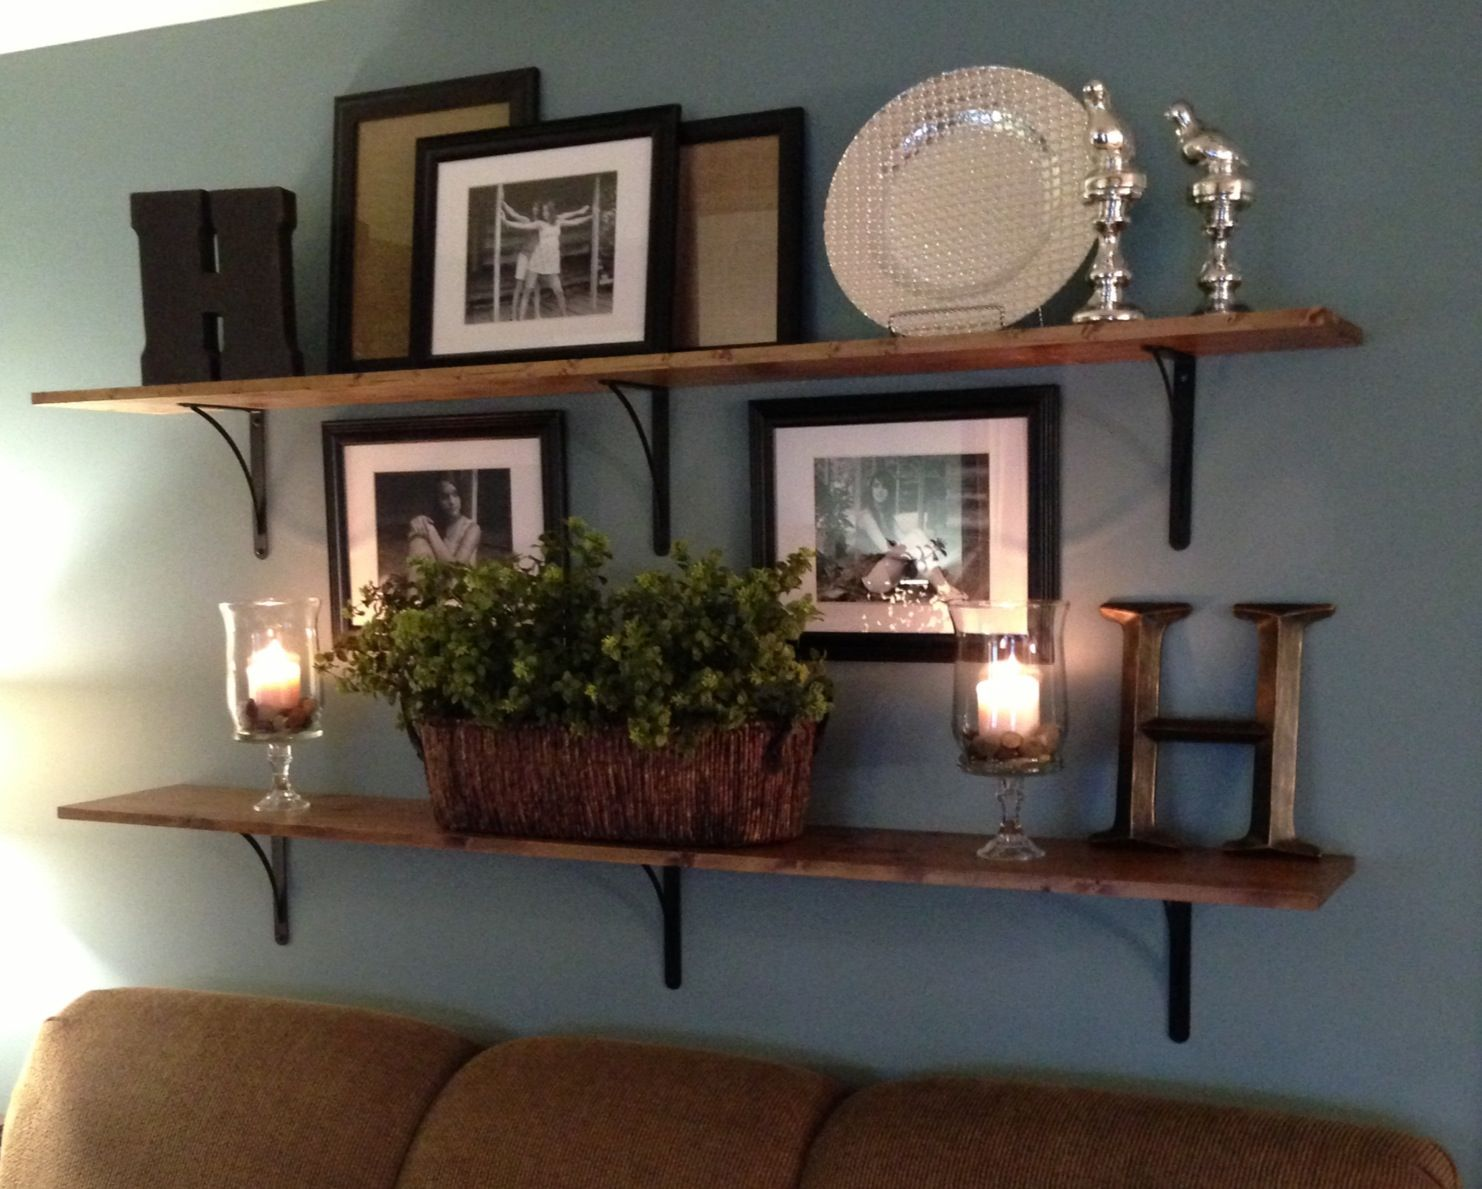 Very Impressive portraiture of Wood shelves in living room For the Home Pinterest with #634530 color and 1482x1189 pixels